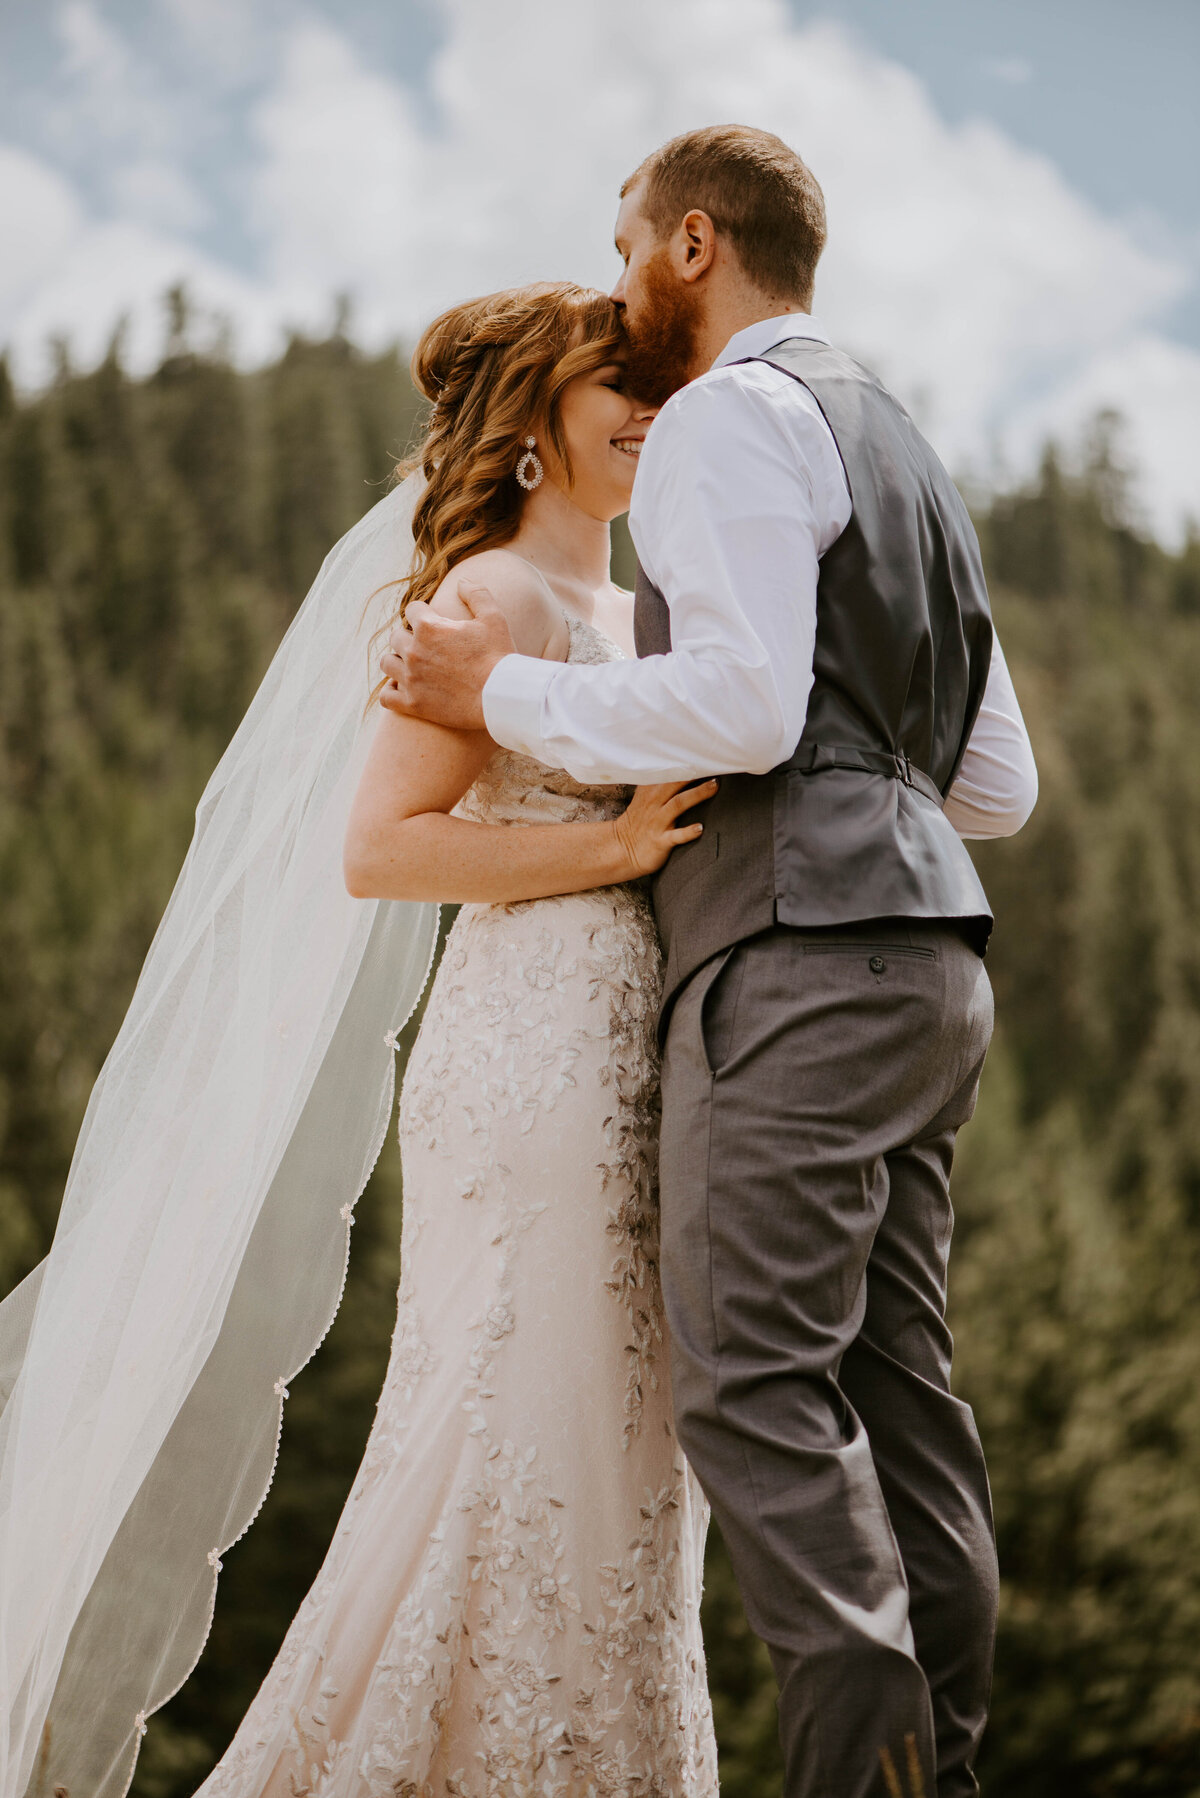 ochoco-forest-central-oregon-elopement-pnw-woods-wedding-covid-bend-photographer-inspiration2217